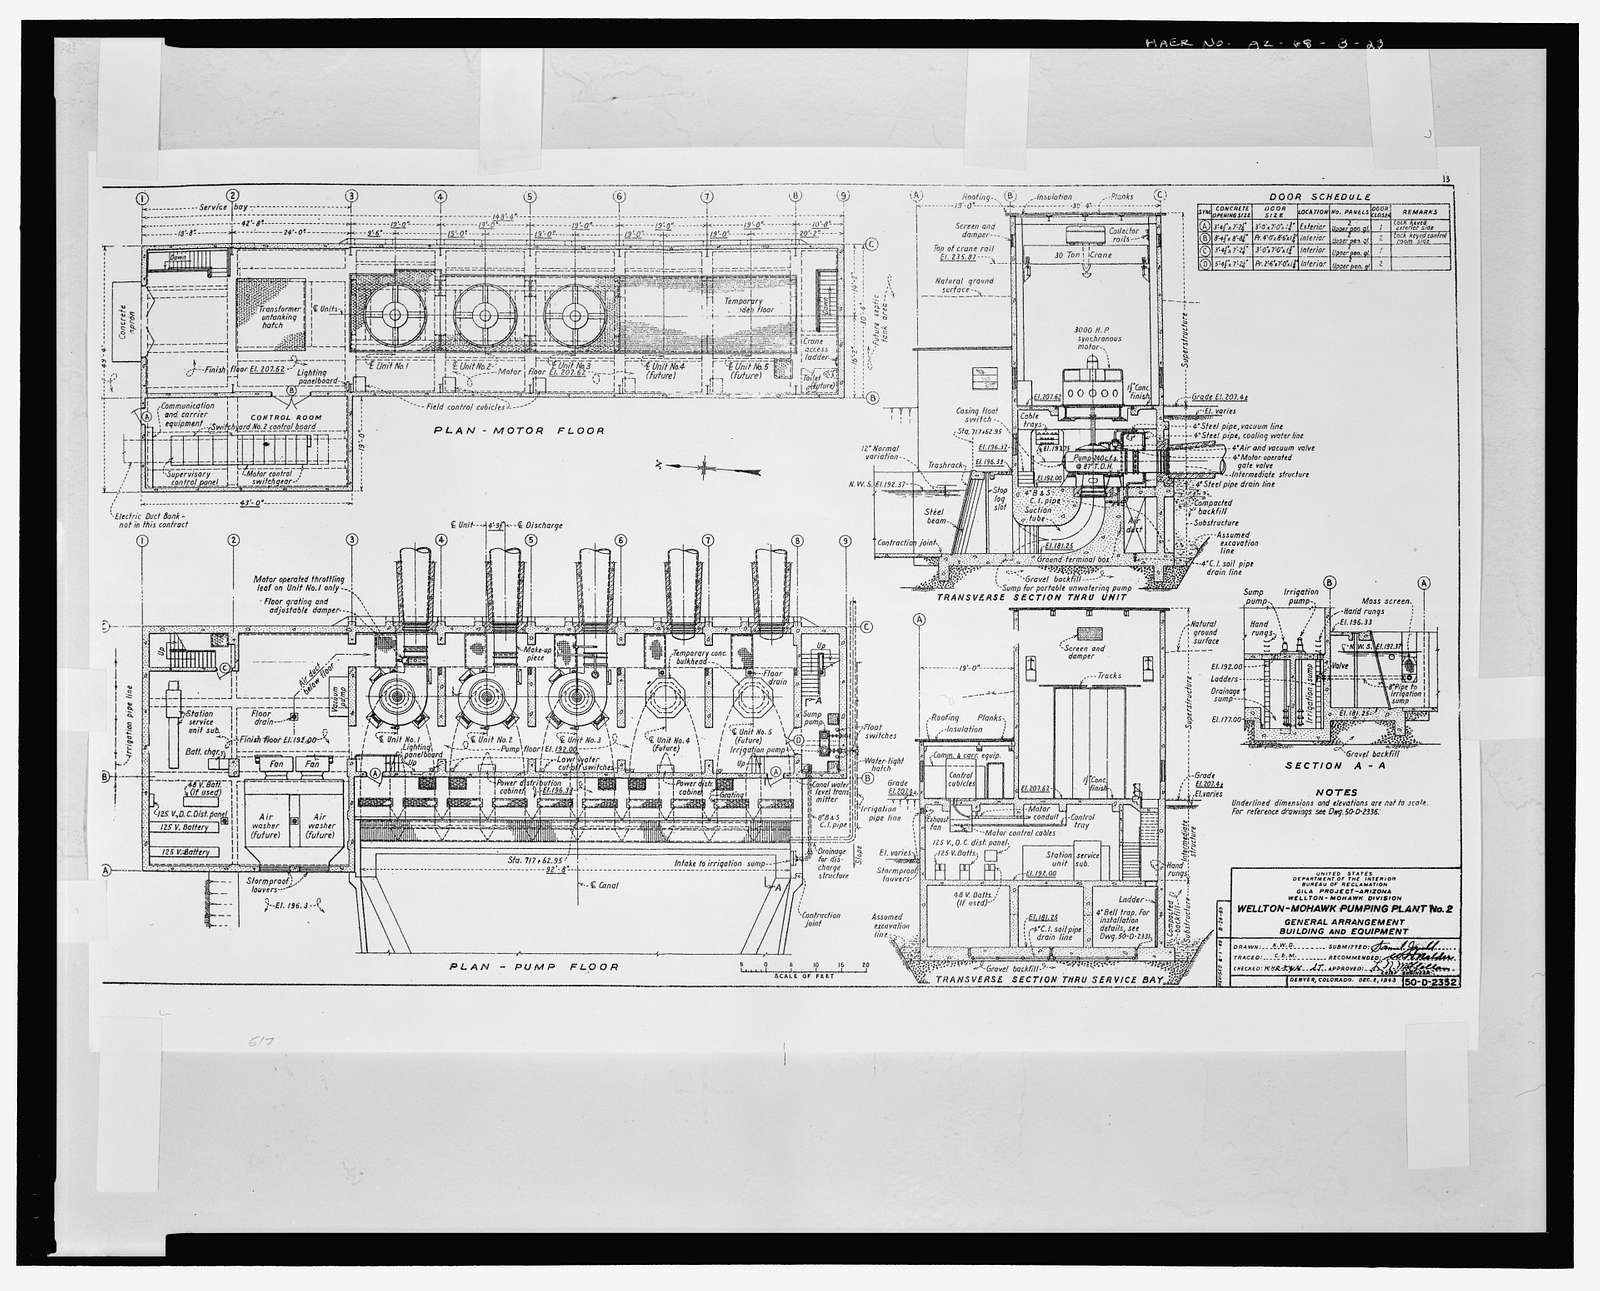 Wellton-Mohawk Irrigation System, Pumping Plant No. 2, Bounded by Interstate 8 to south, Wellton, Yuma County, AZ